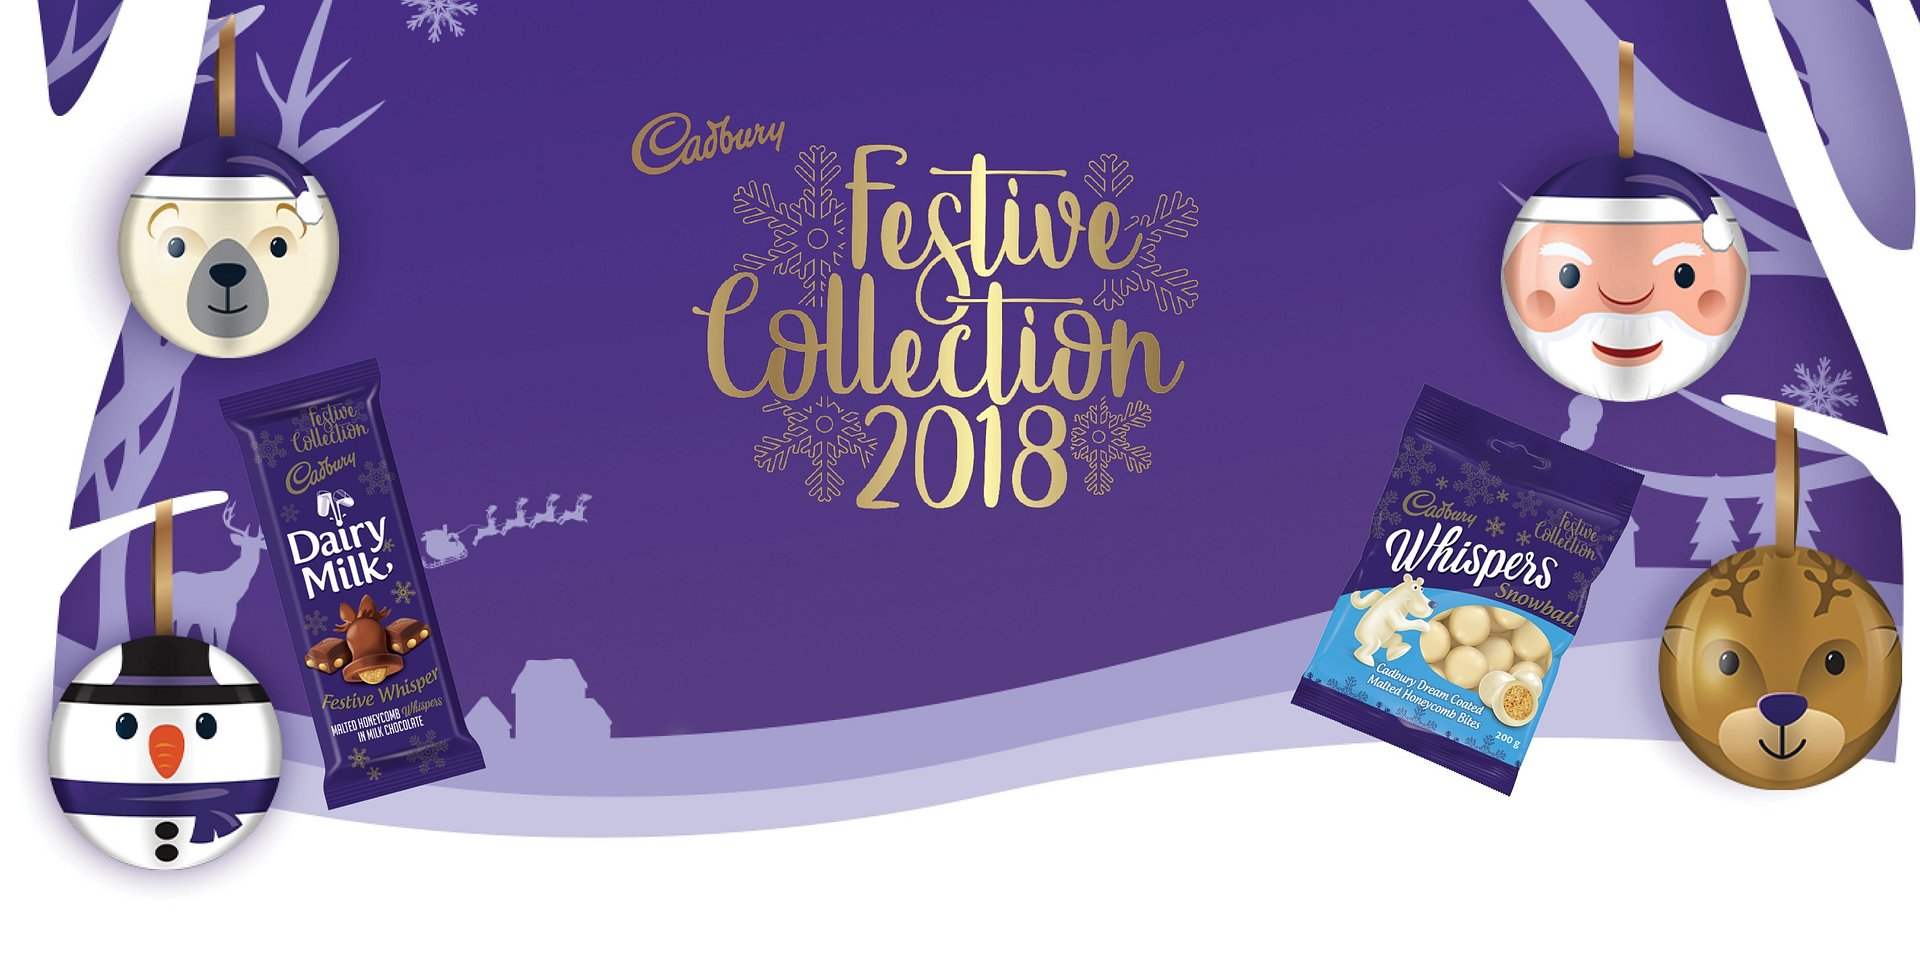 Cadbury Welcomes in the Festive Season with a Series of Digital Stories